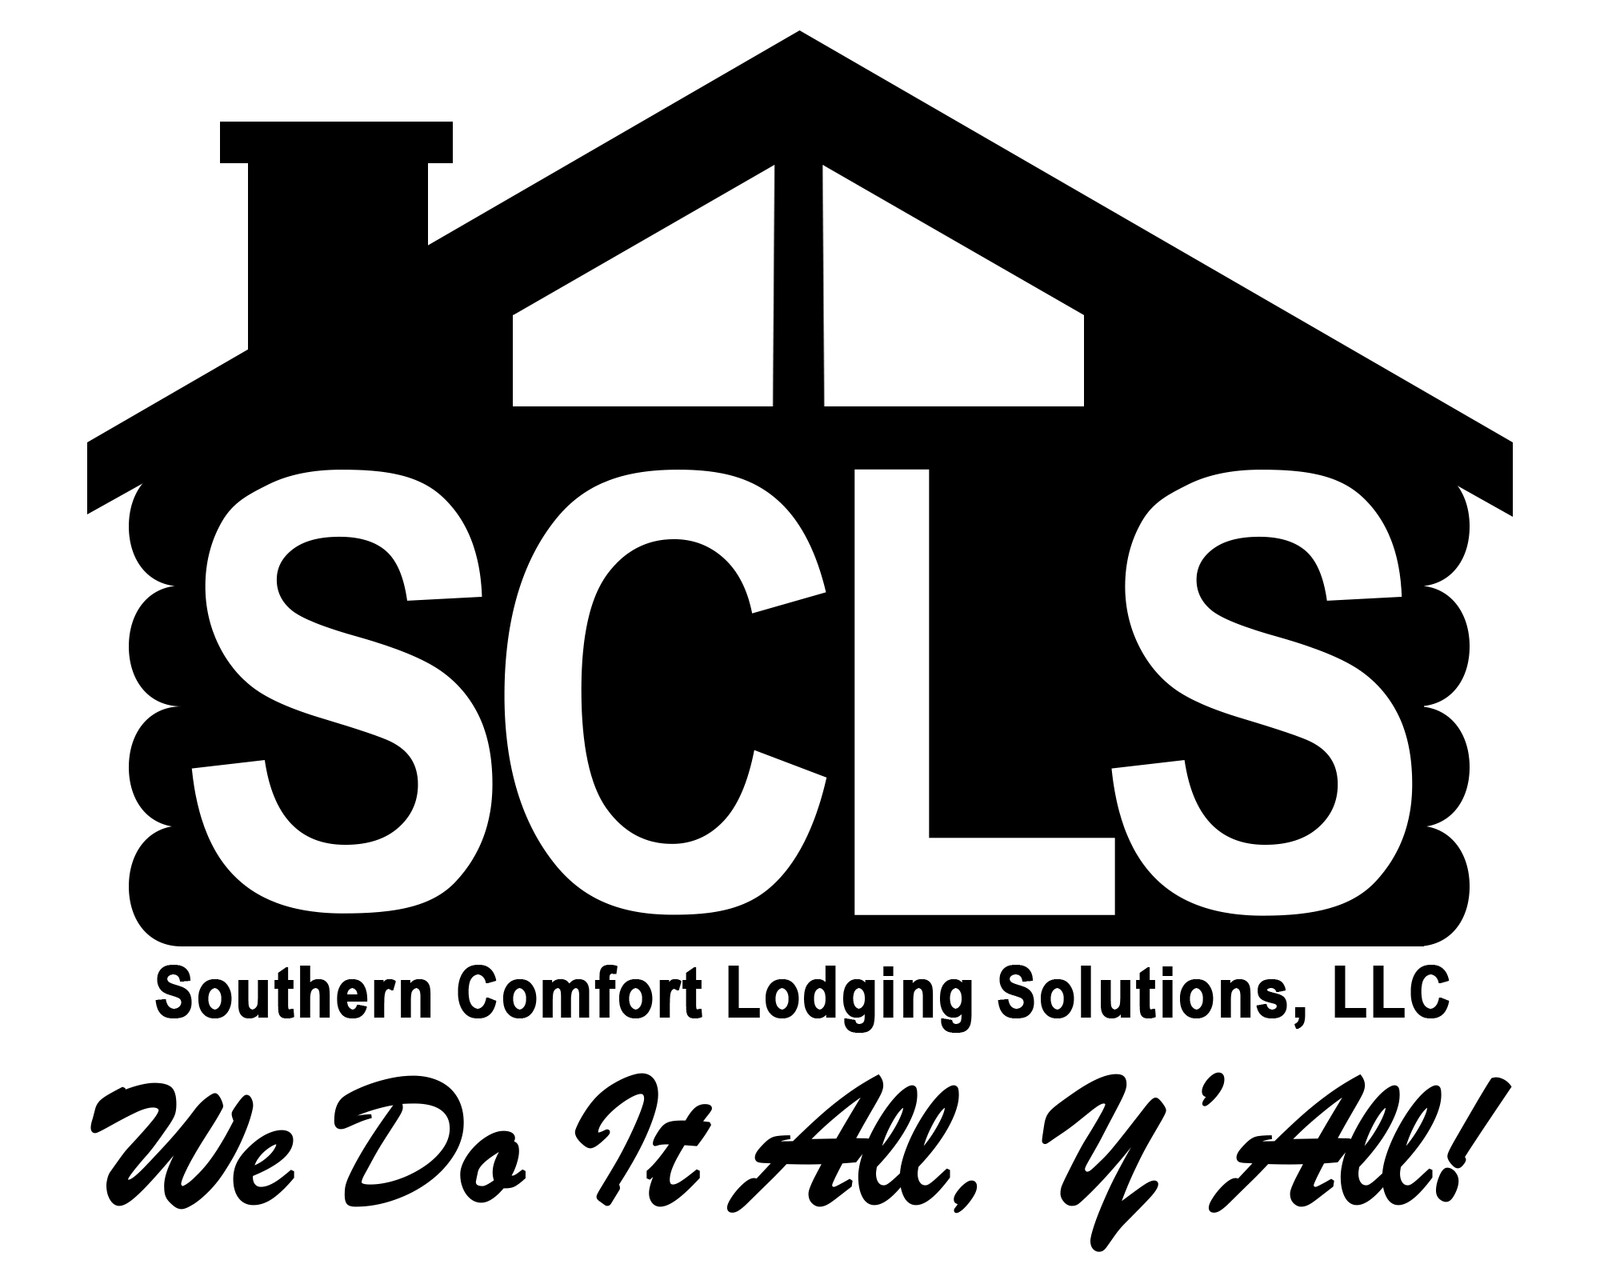 Final iteration of the SCLS logo (Black version)